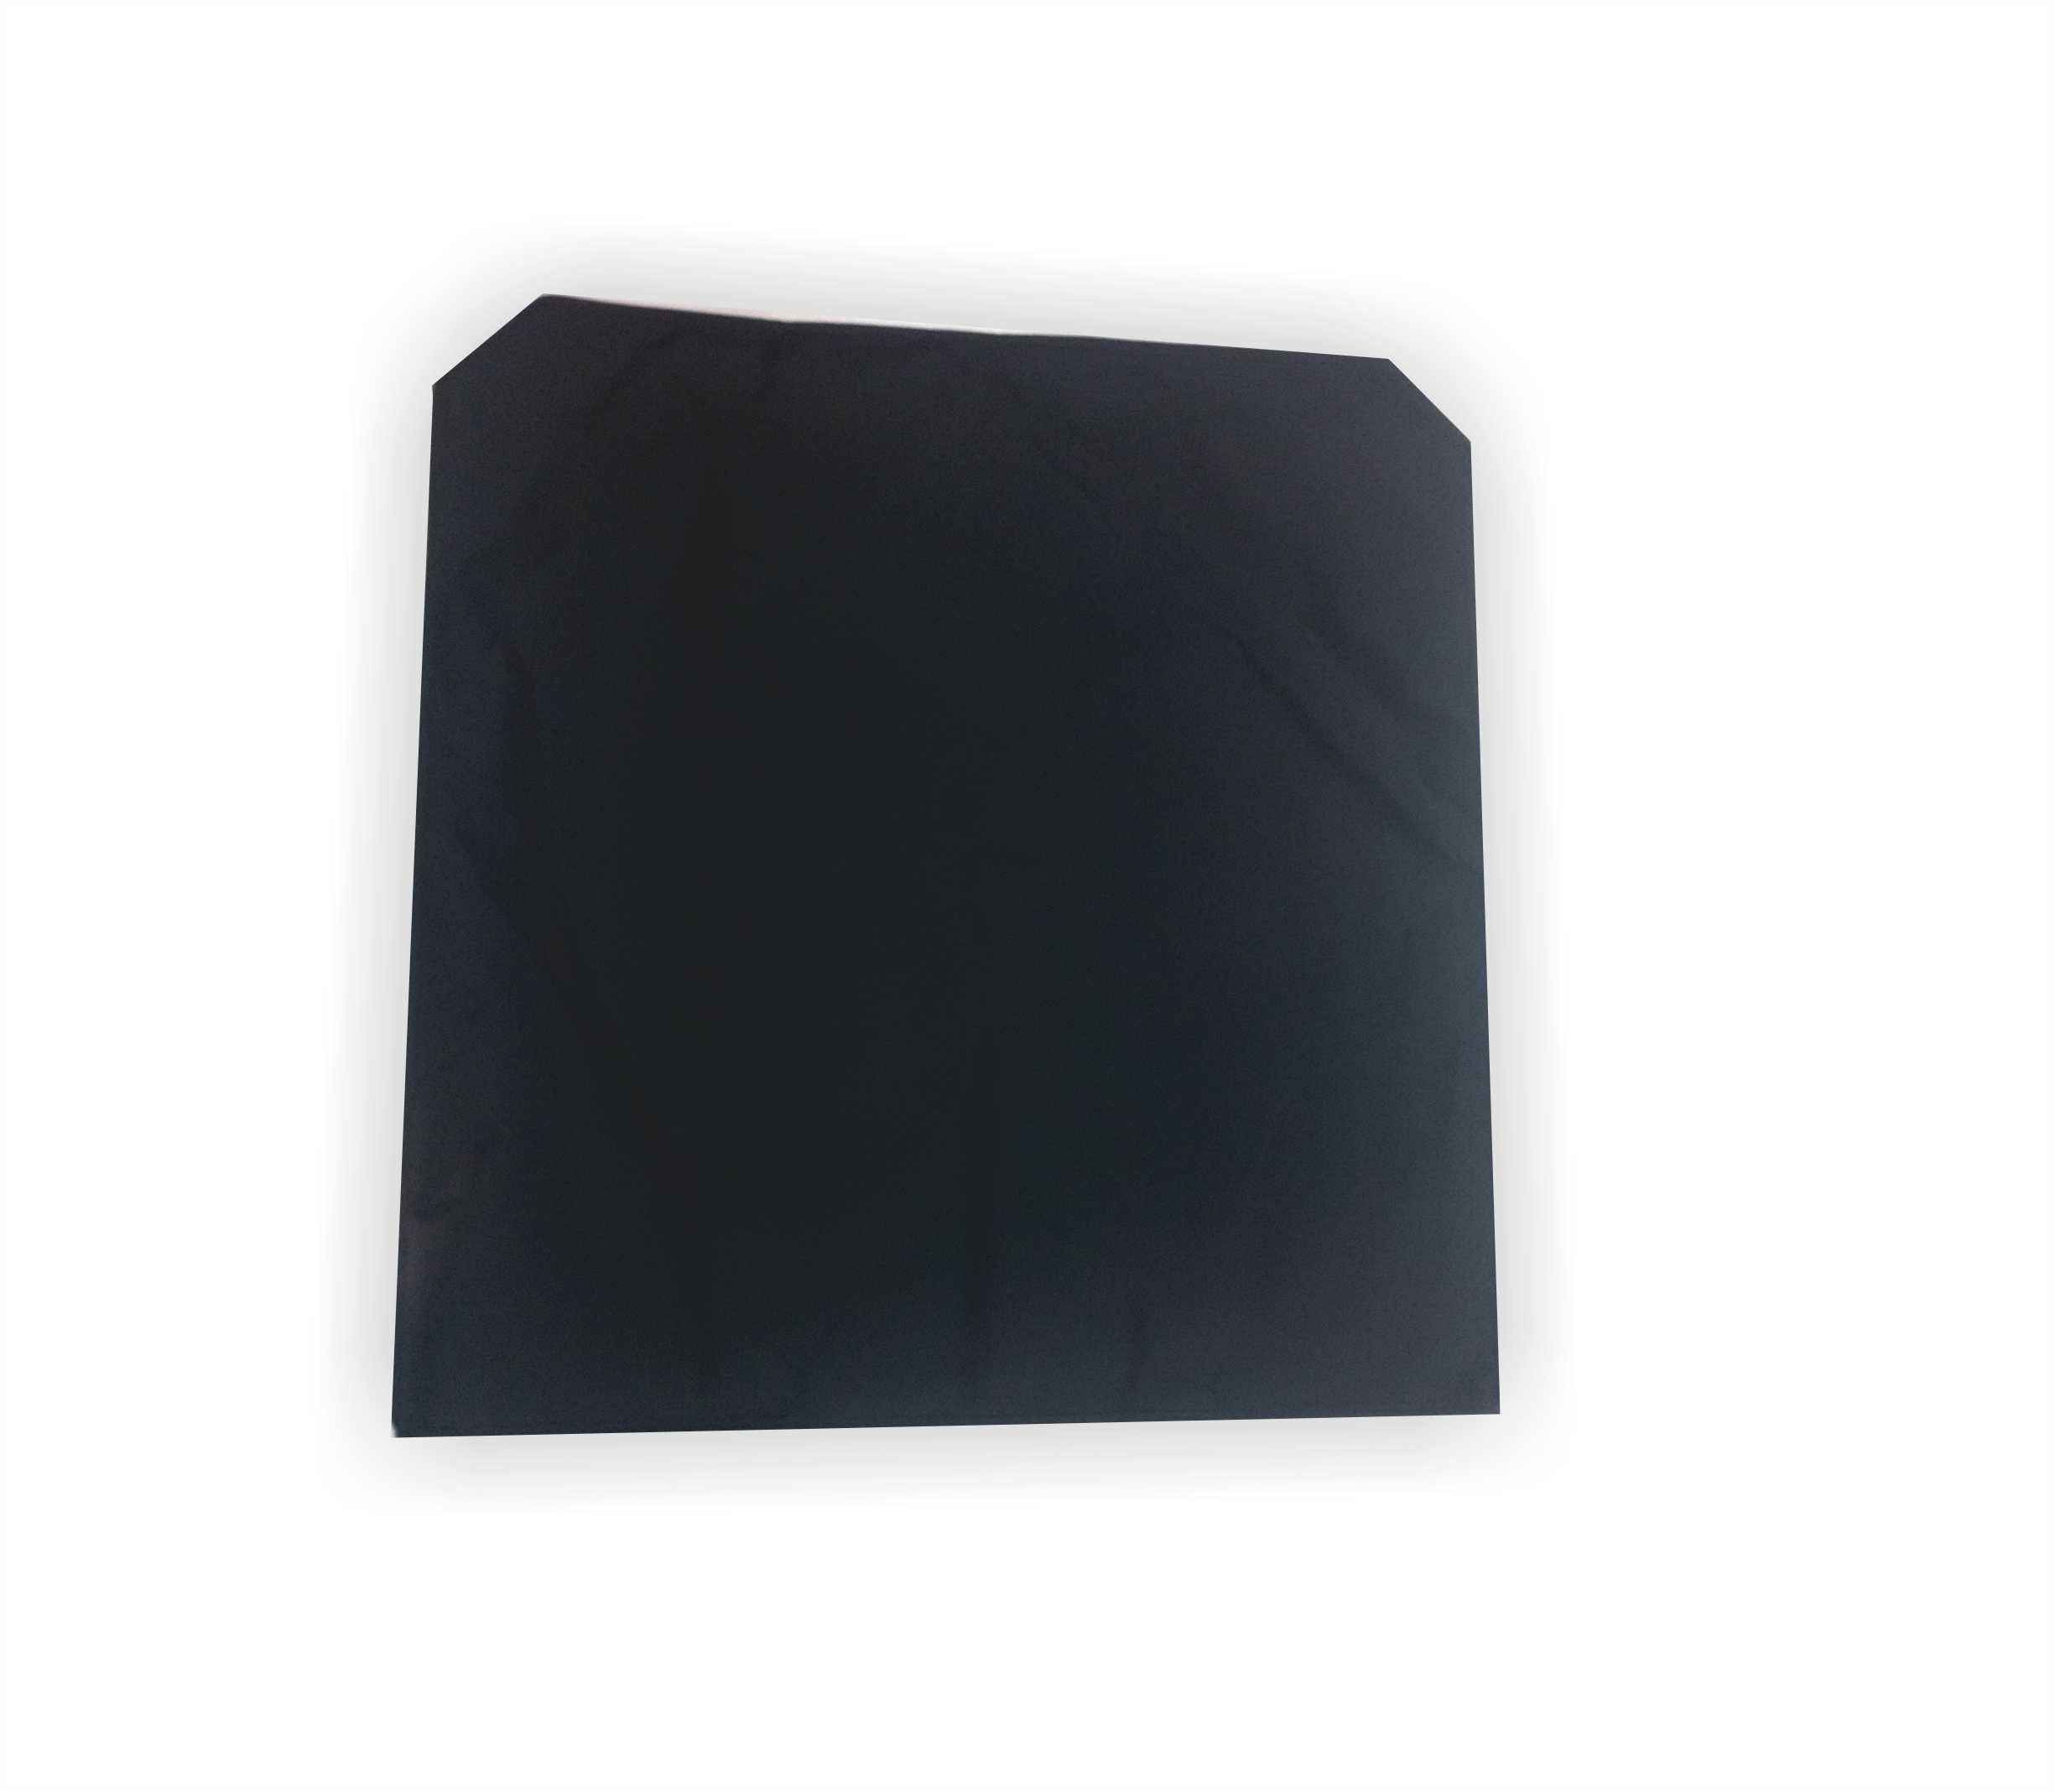 Black Nylon Designed for Full Size Industry Standard Microscopes. 22'' Wide X 22'' High by Viziflex (Image #1)